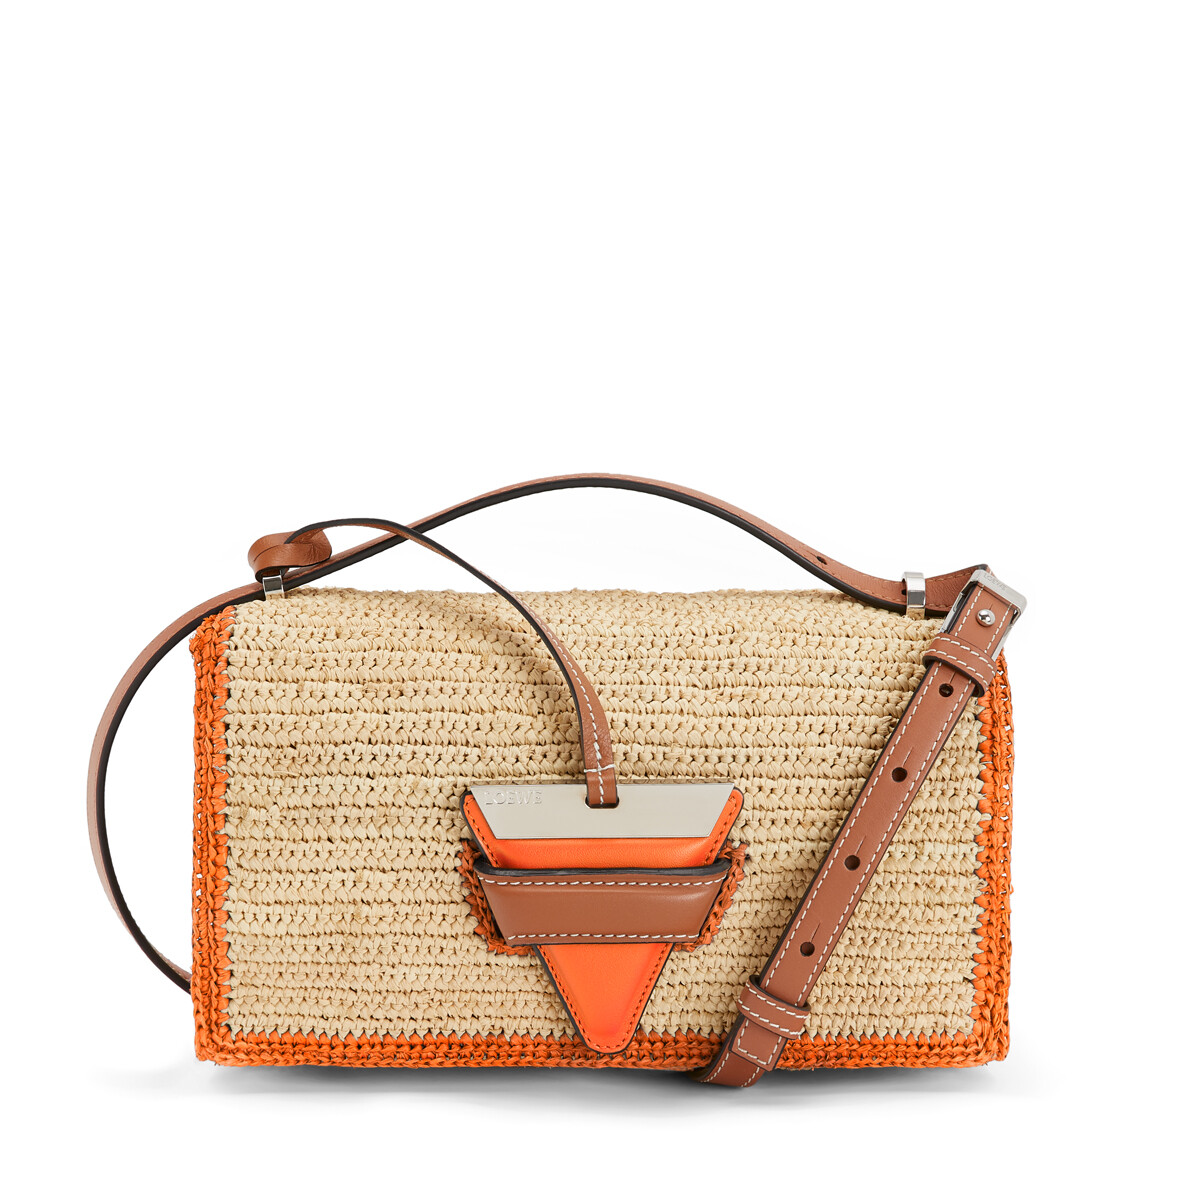 LOEWE Paula's Barcelona Bag Natural/Orange front